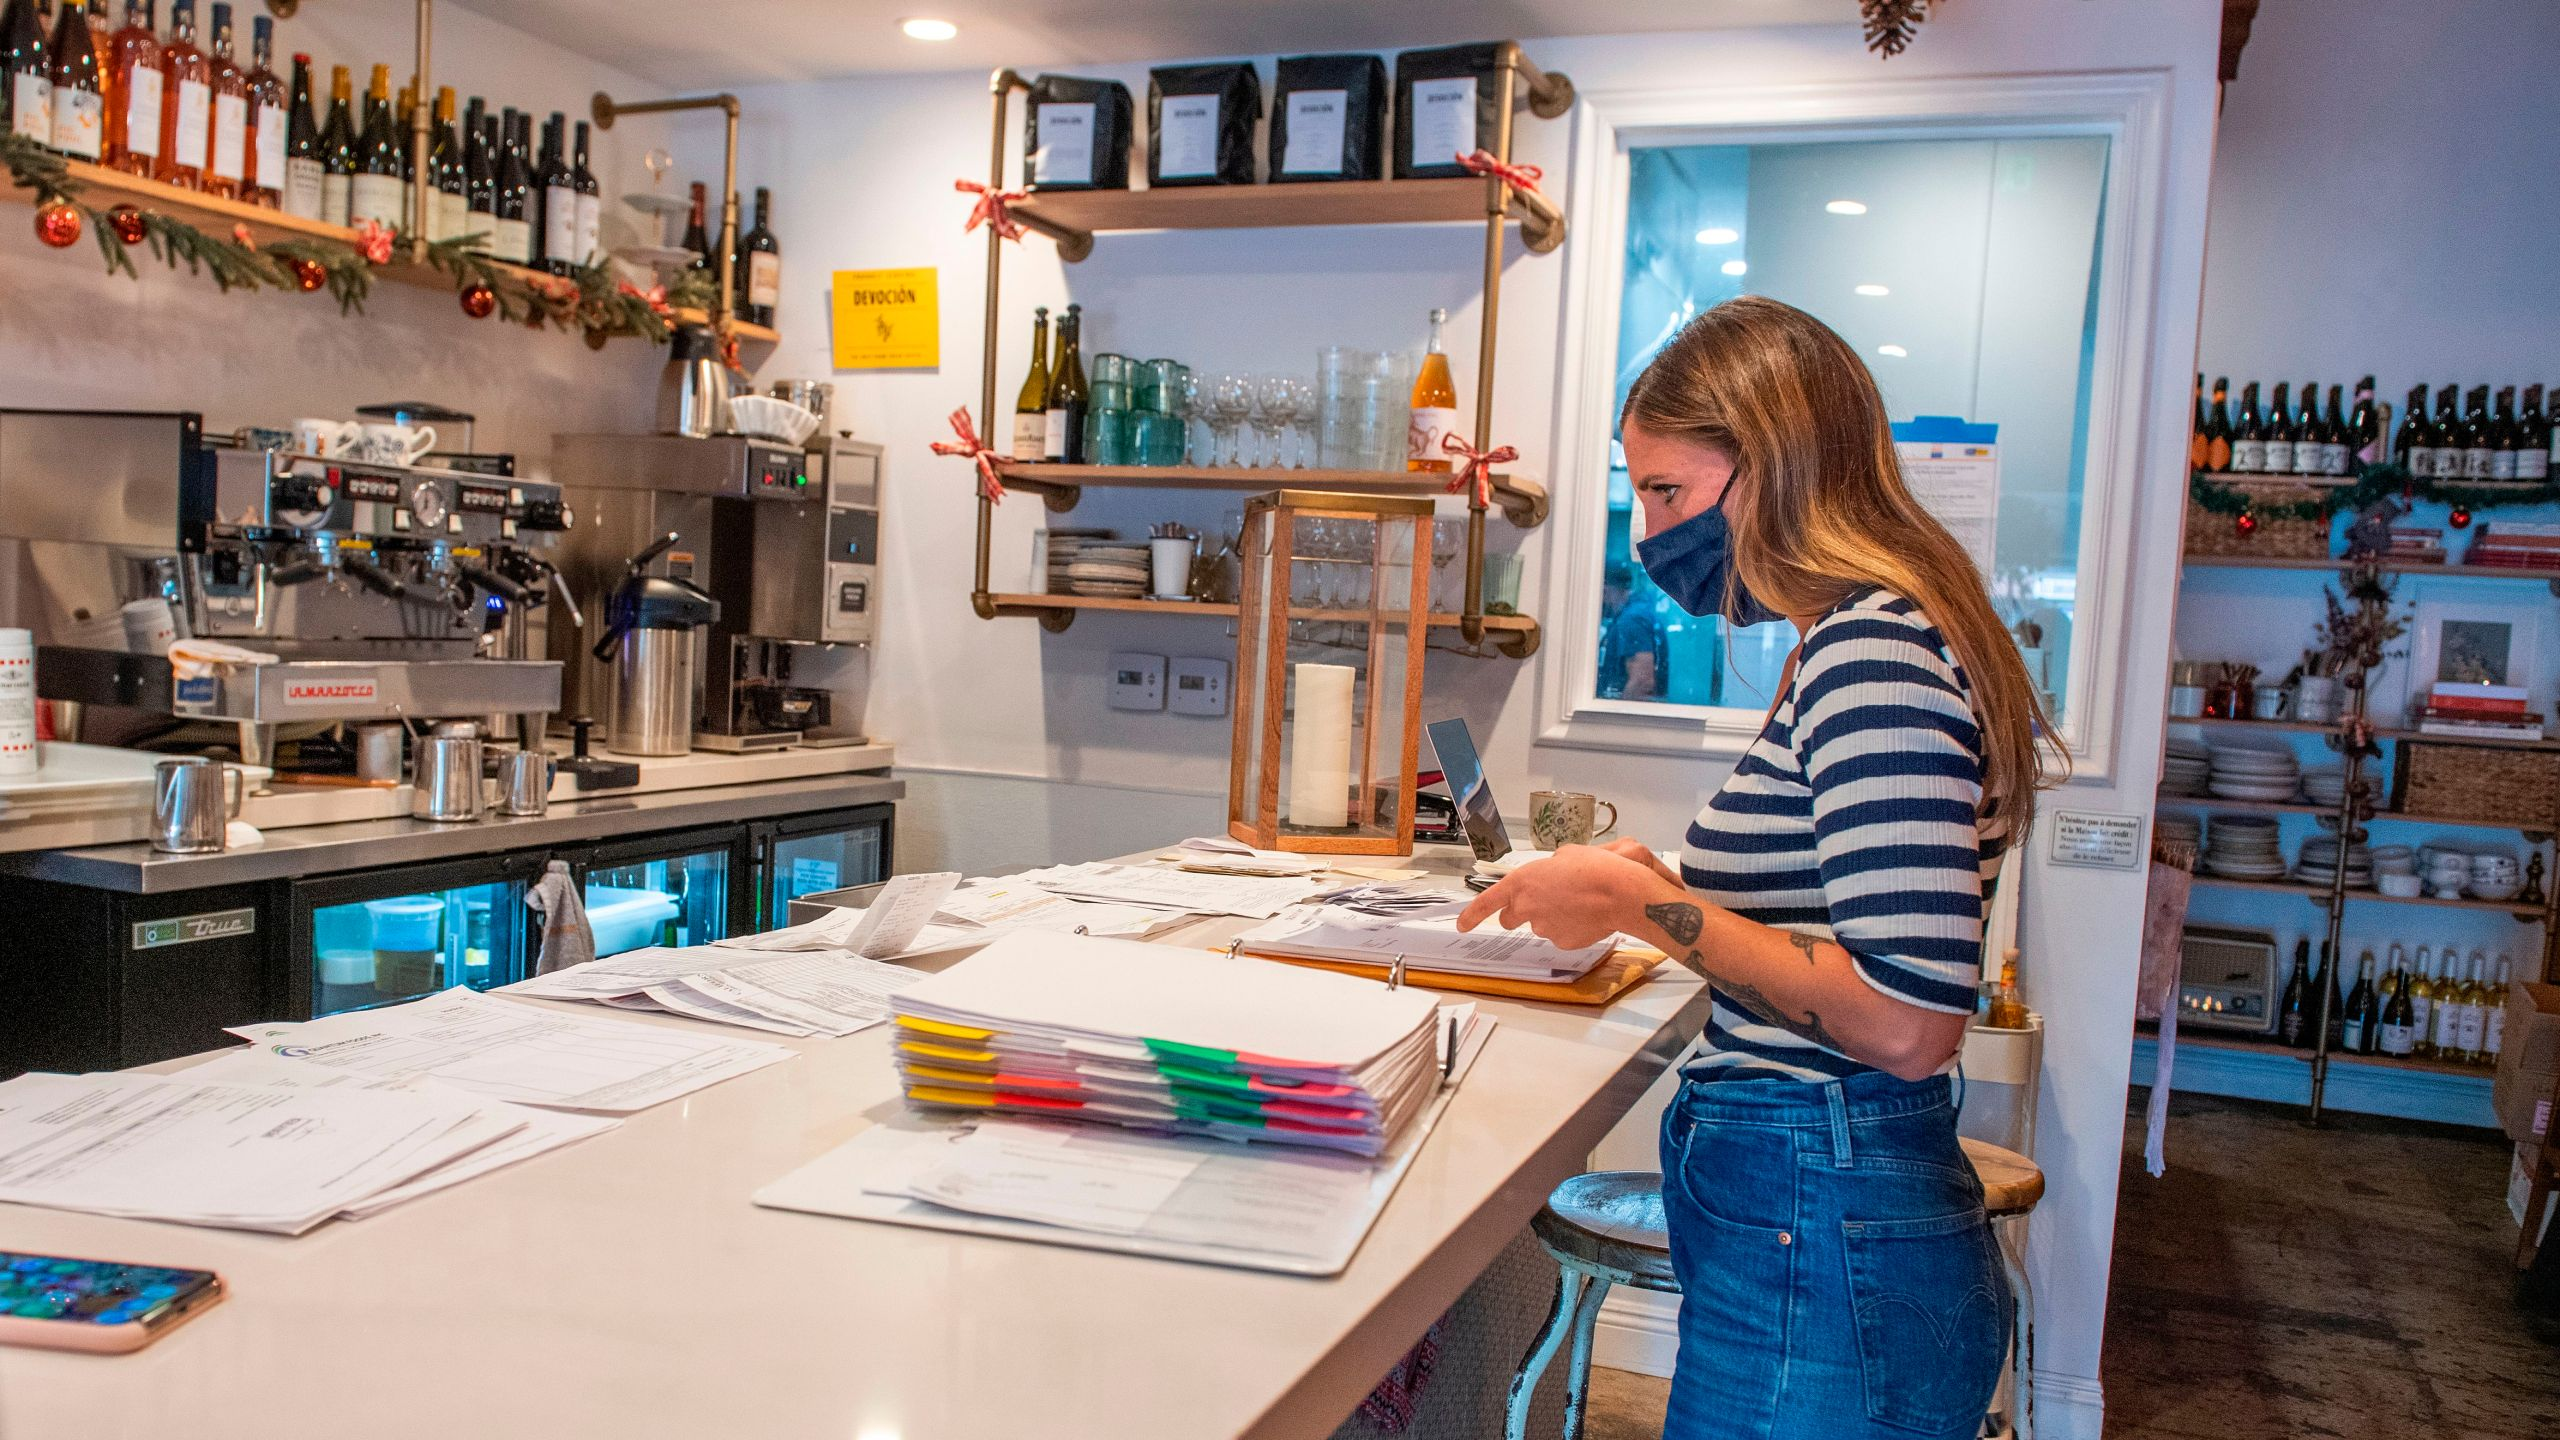 """Sarah Bessade, owner of """"La Loupiotte Kitchen"""", a restaurant in Los Angeles, works on her accounts in the restaurant's kitchen on Dec. 8, 2020. (VALERIE MACON/AFP via Getty Images)"""